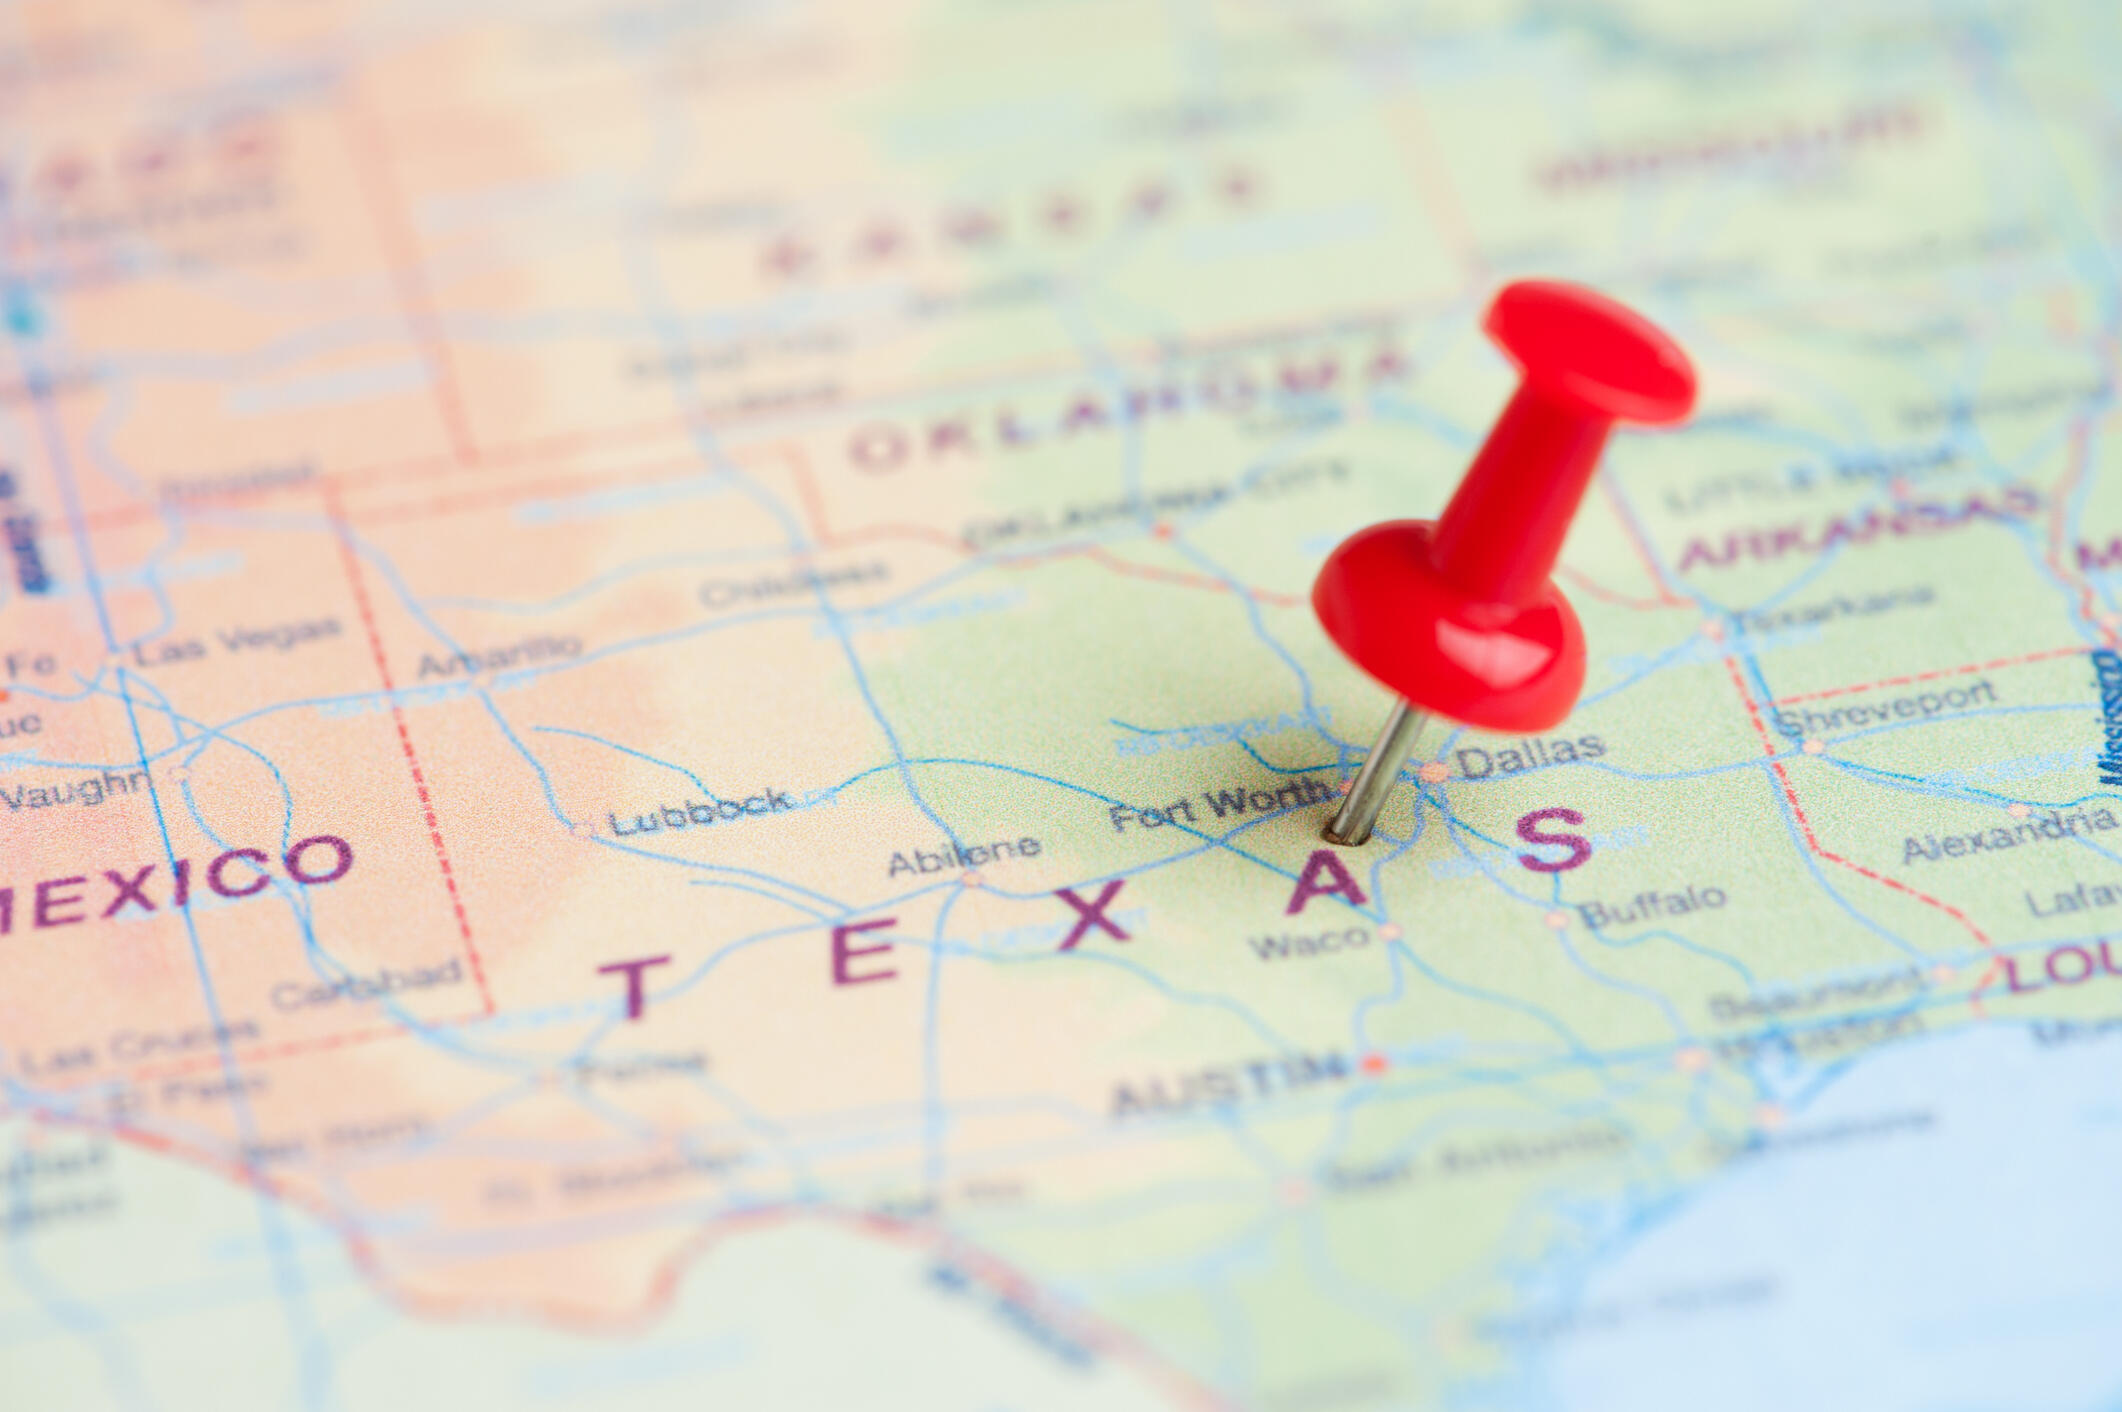 7 of 15 Fastest Growing Cities Are In Texas